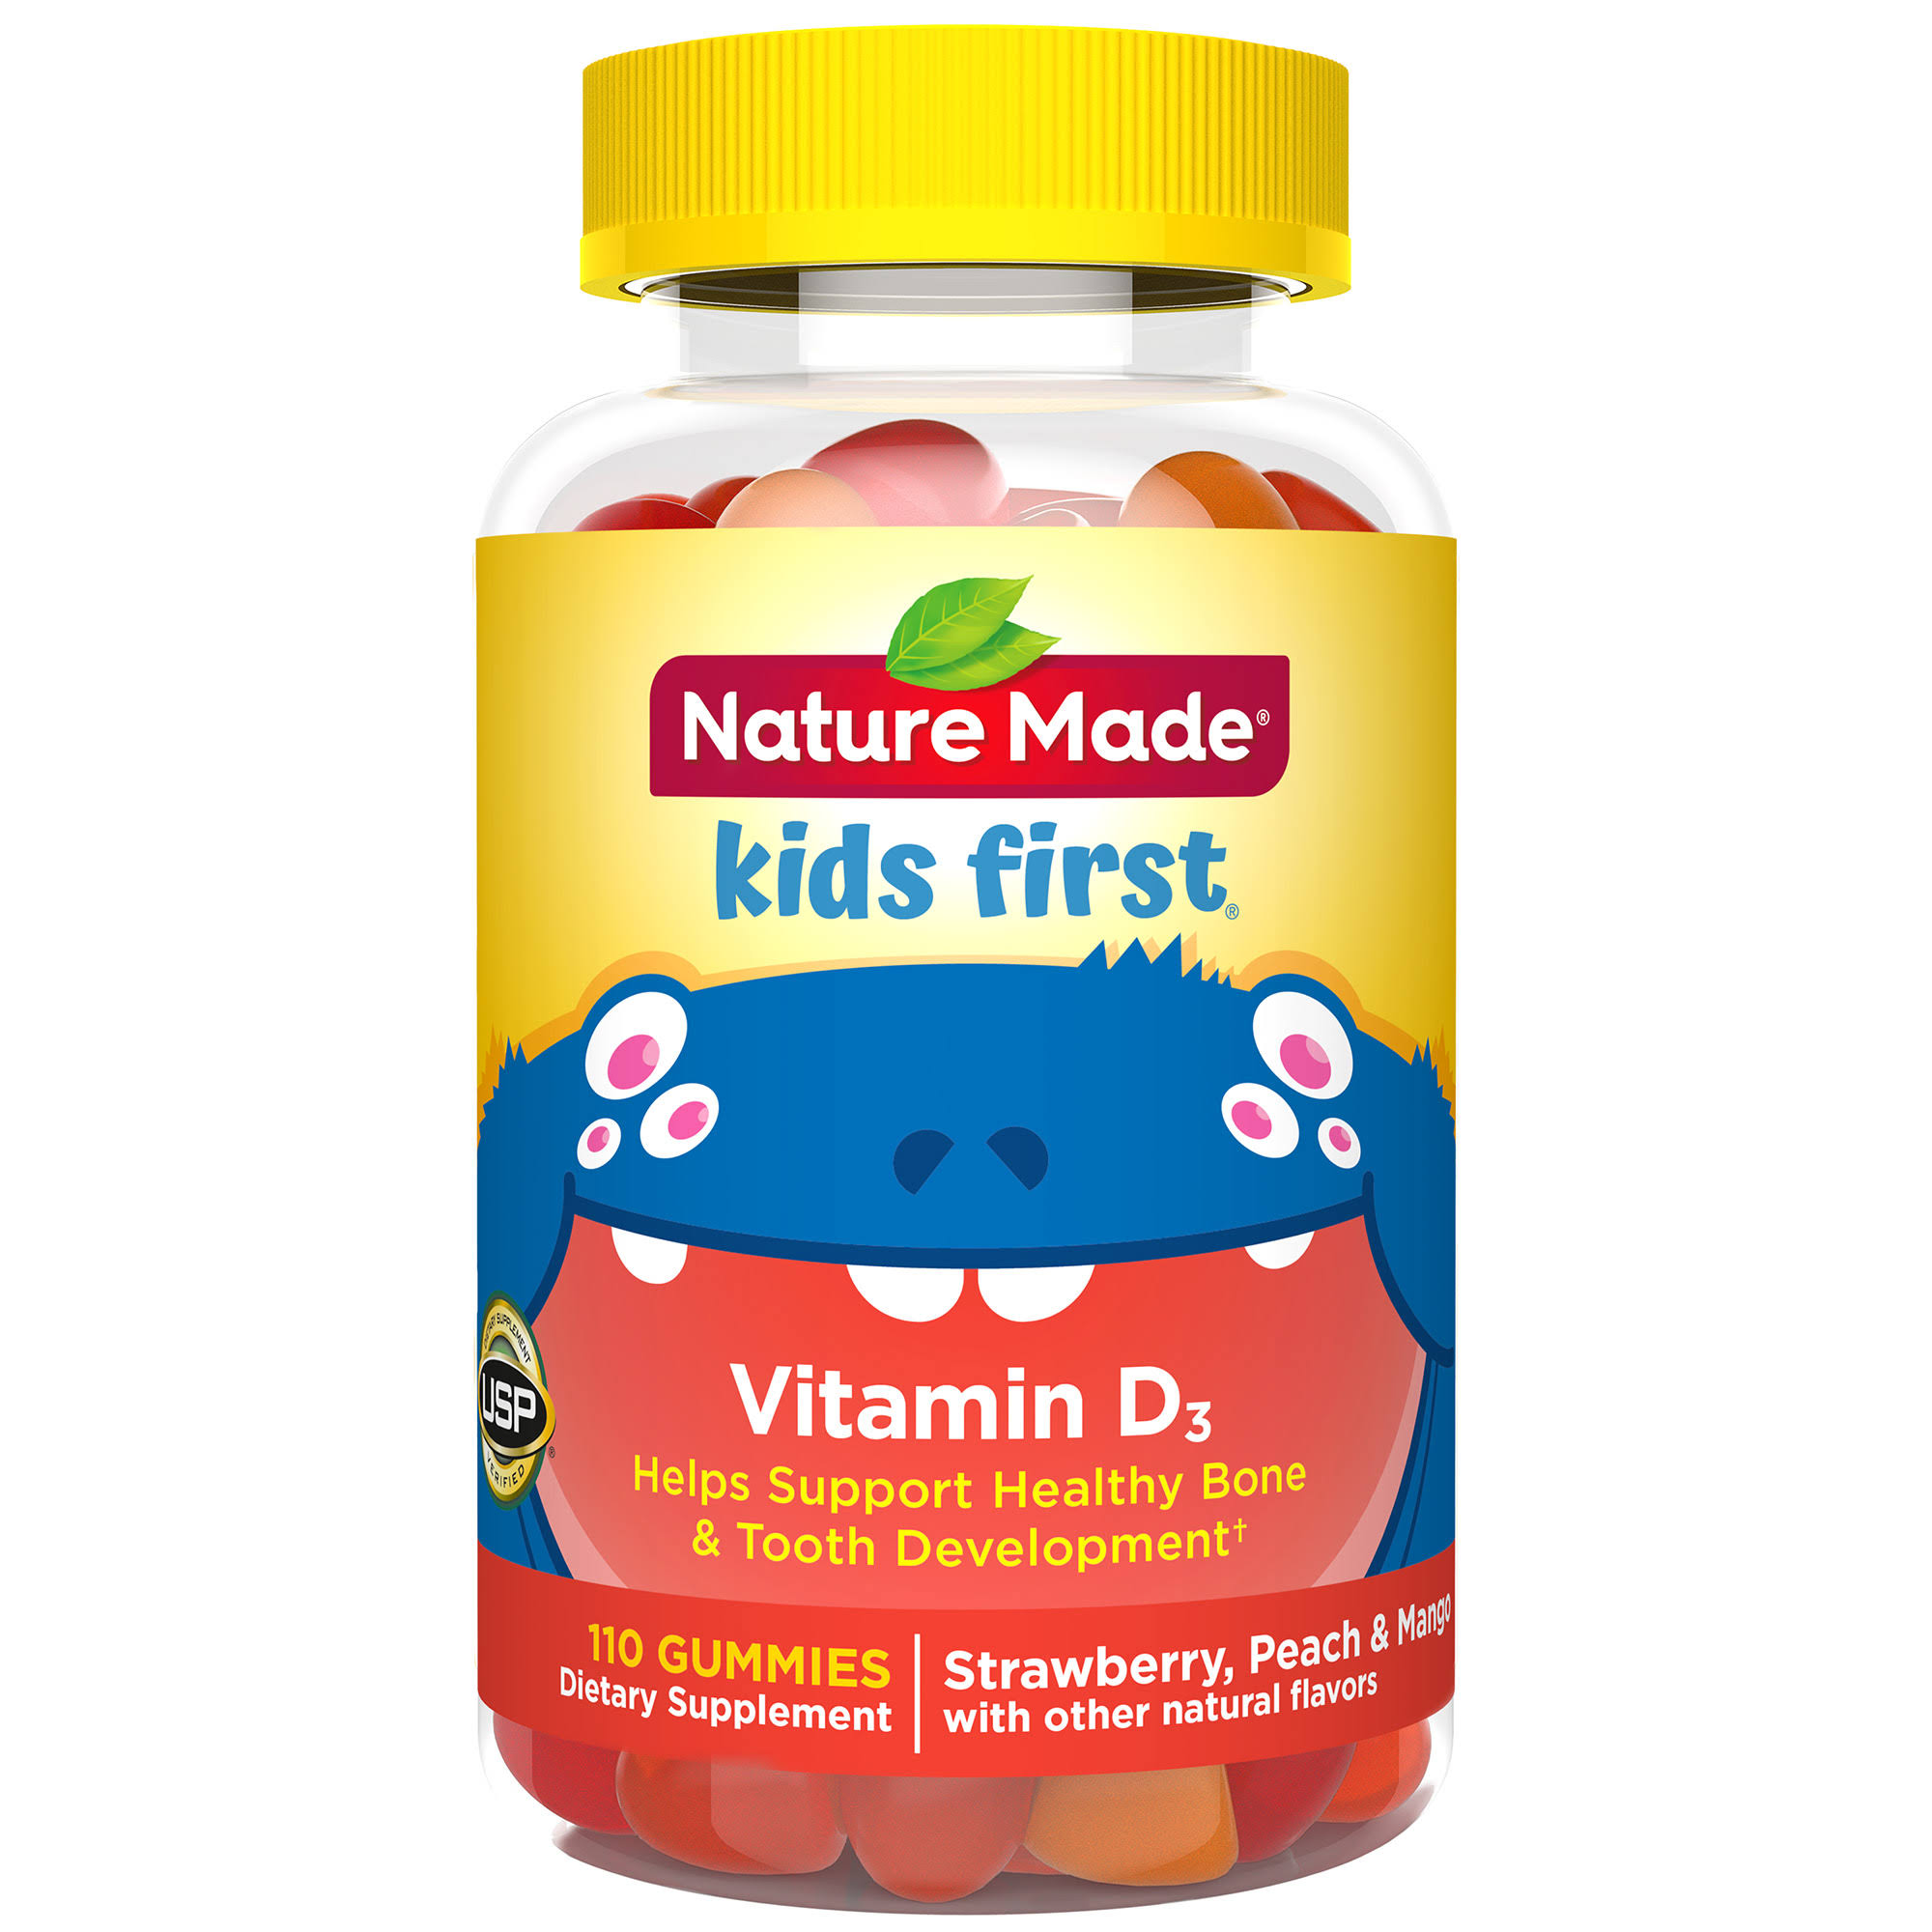 Nature Made Kids First Vitamin D3 Gummies Supplement - Peach Mango and Strawberry, 110ct